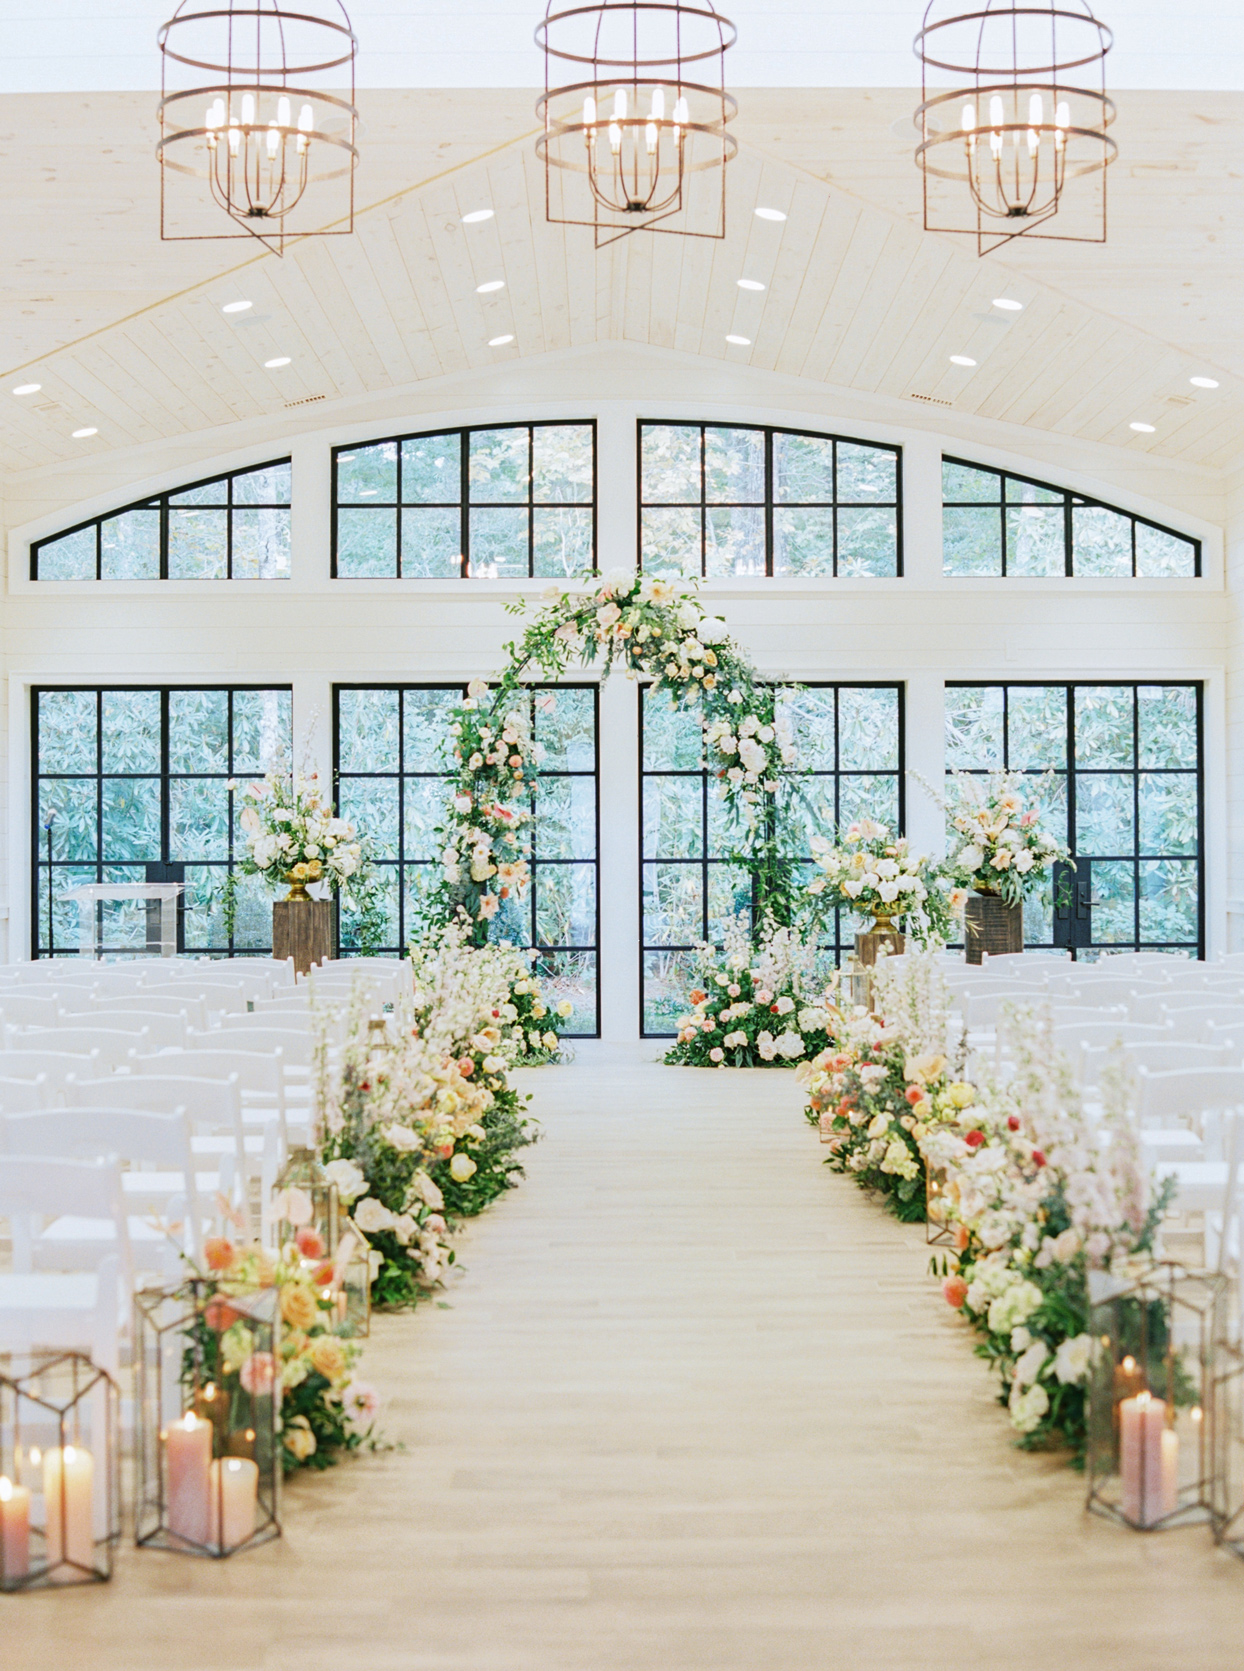 Orchard House with vaulted pine ceiling was accented with gold chandeliers and lanterns holding lit pillar candles along the aisle